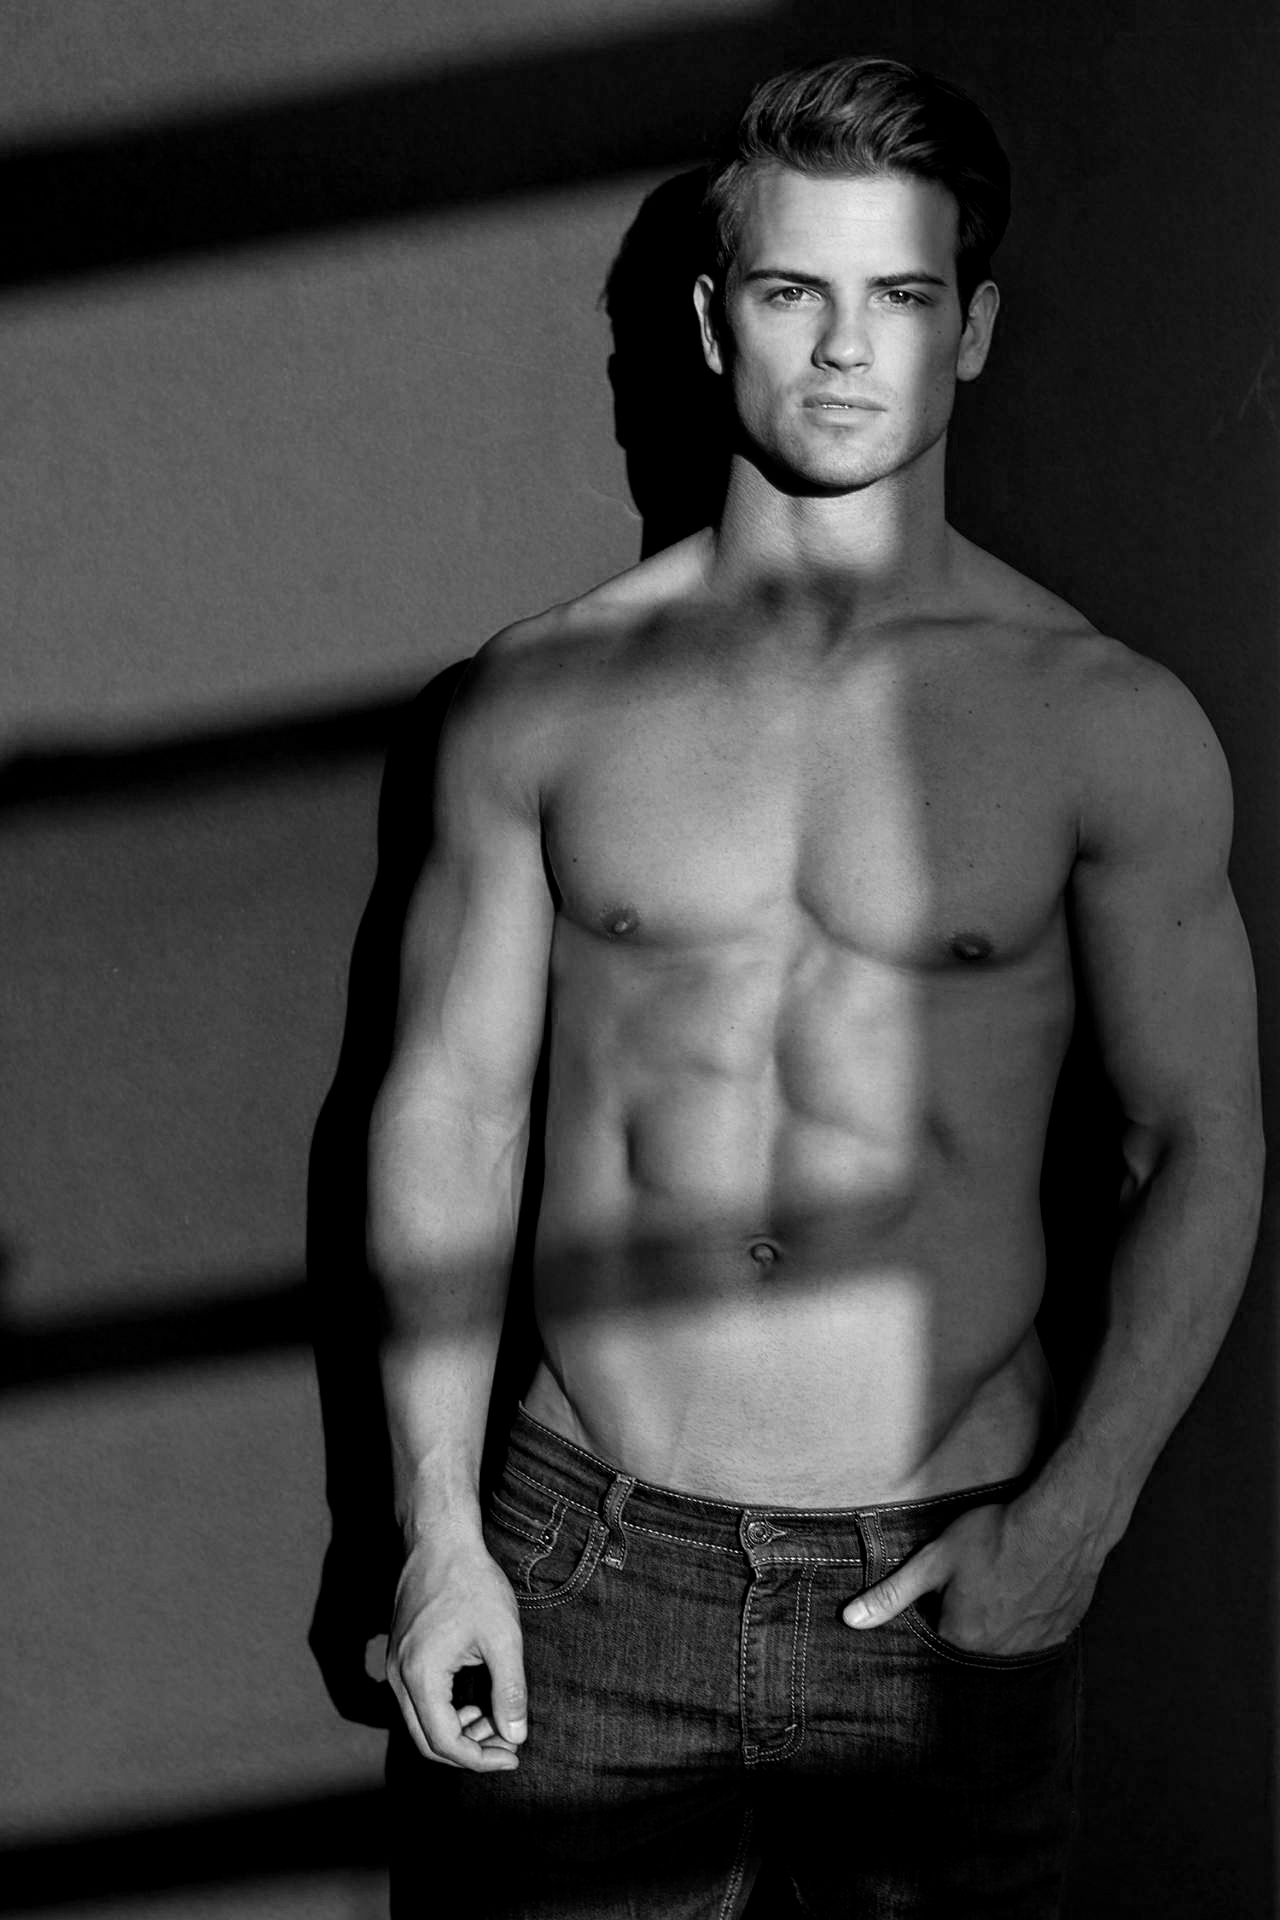 Male Beauty And Fashion Photography More In Malefashiontrendstumblr